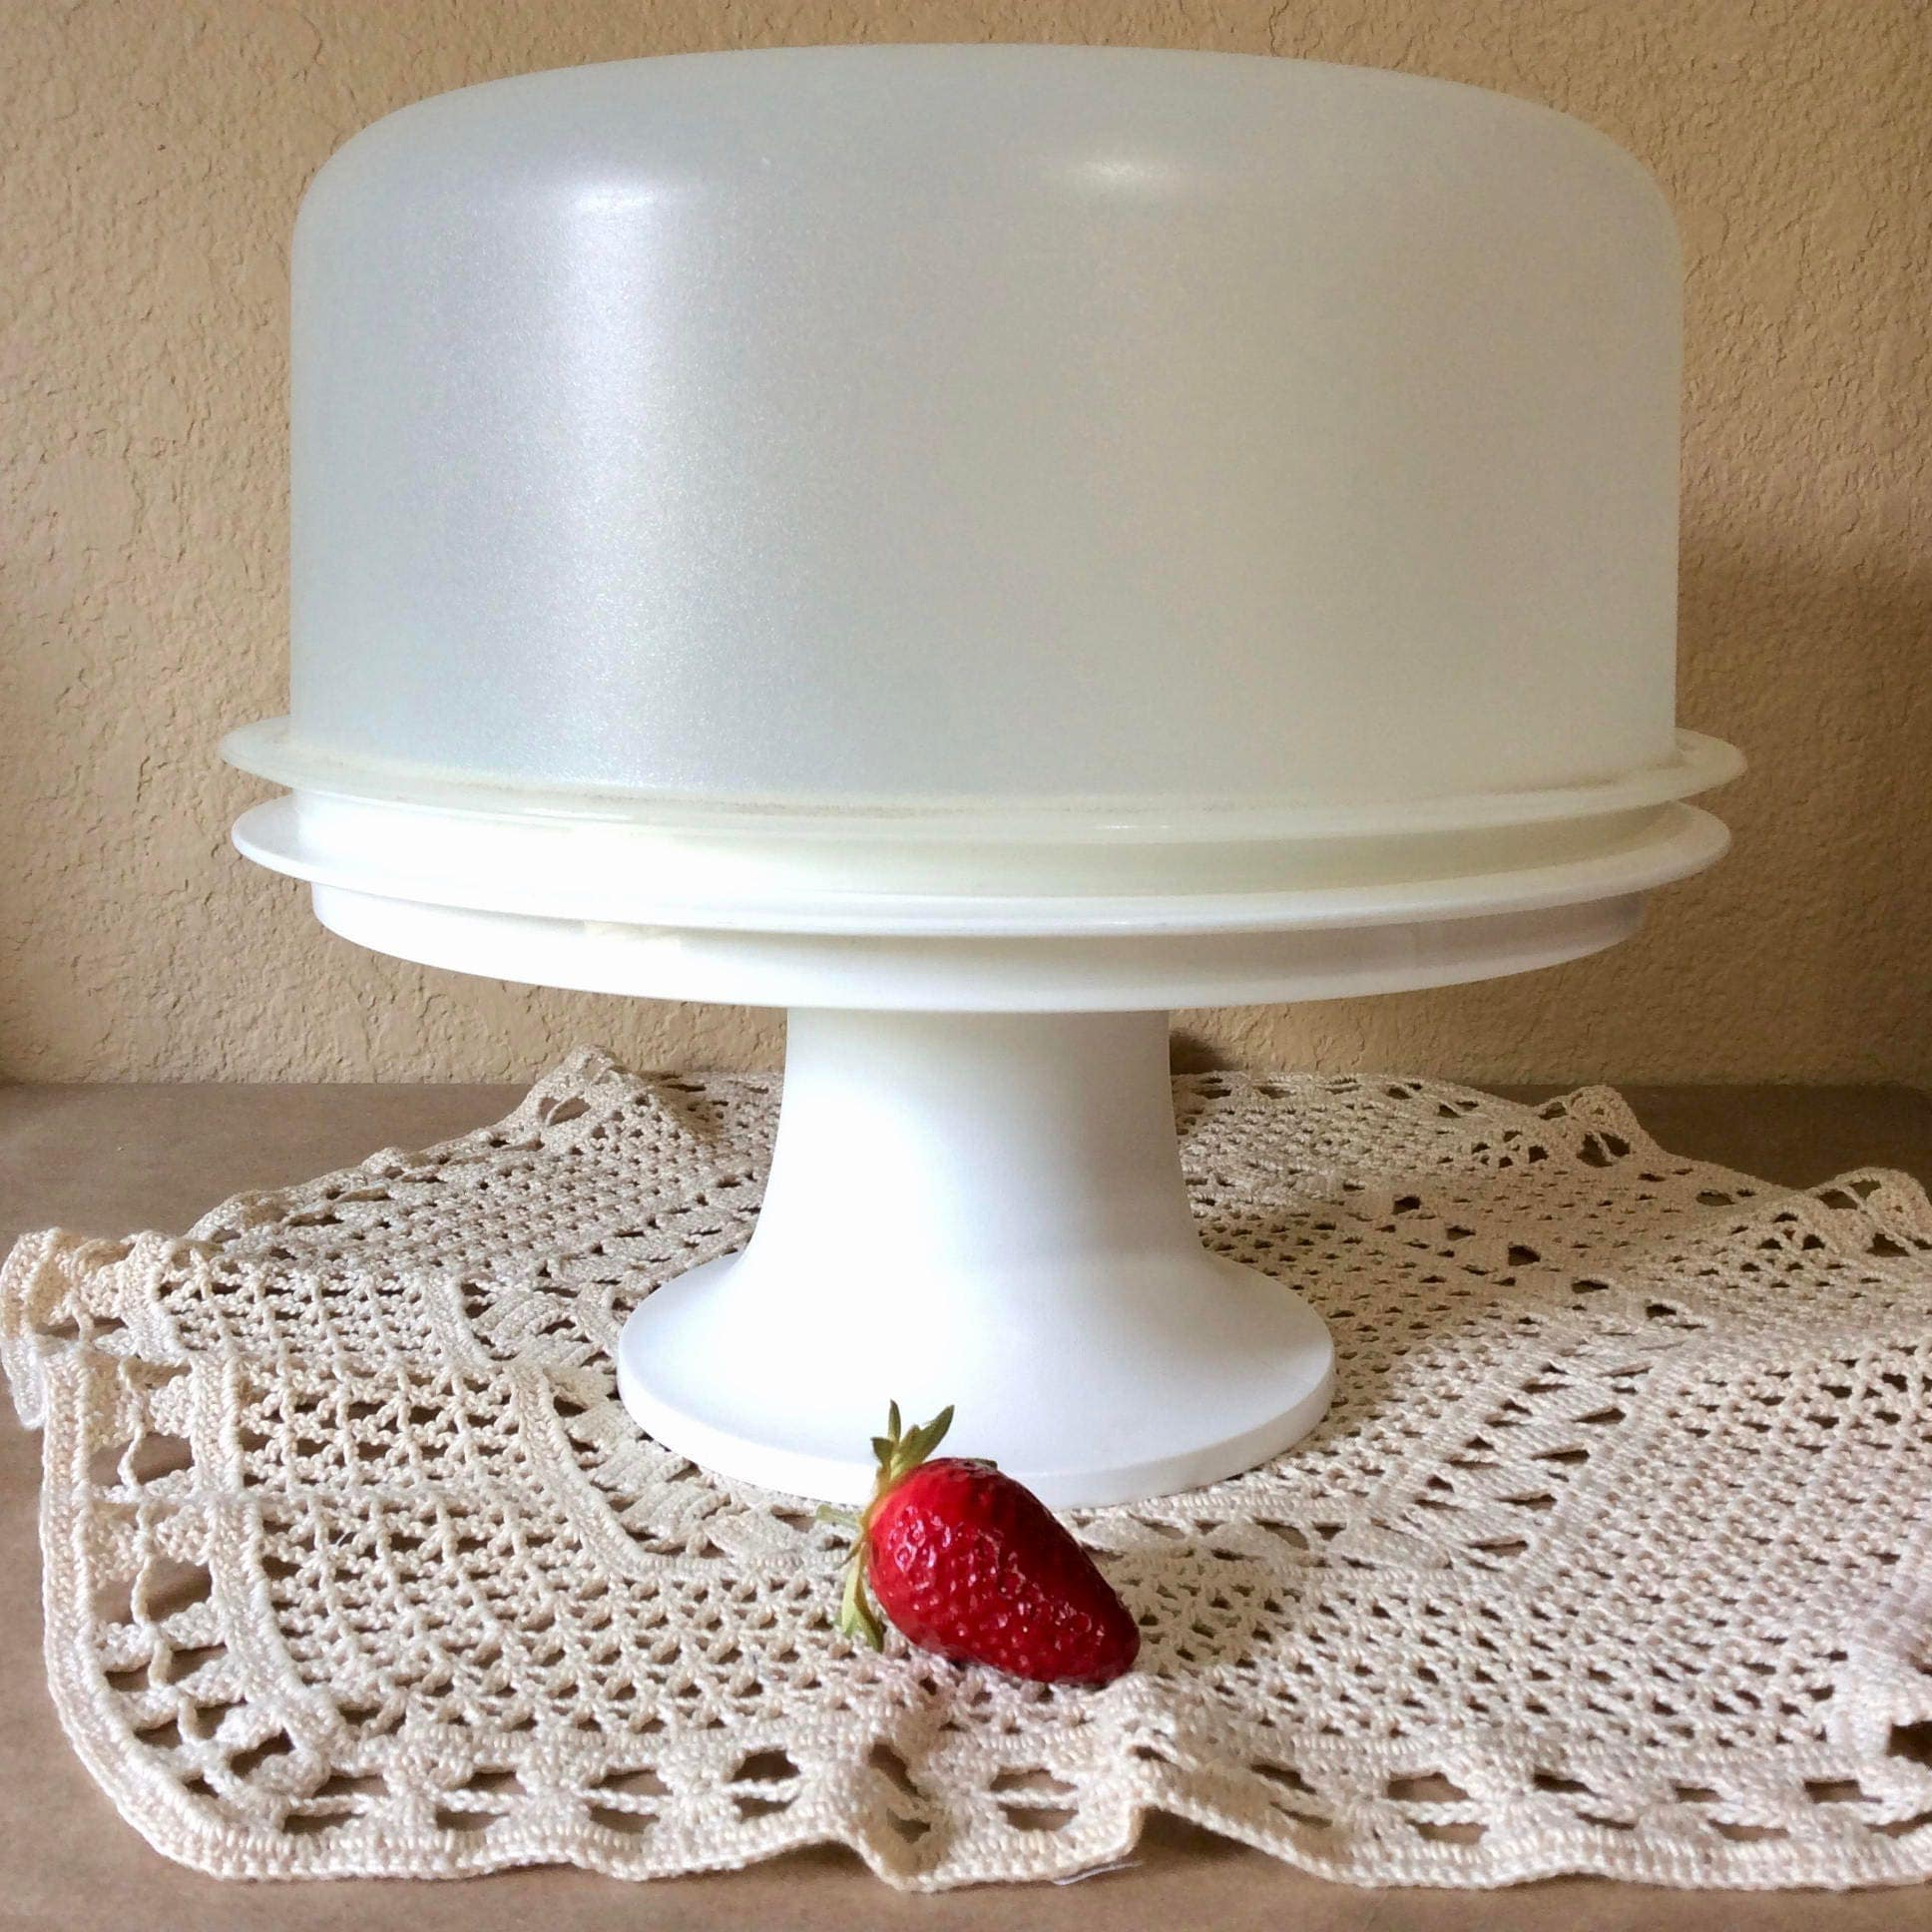 Vintage Tupperware Cake Taker Stand With Sheer Dome Lid And